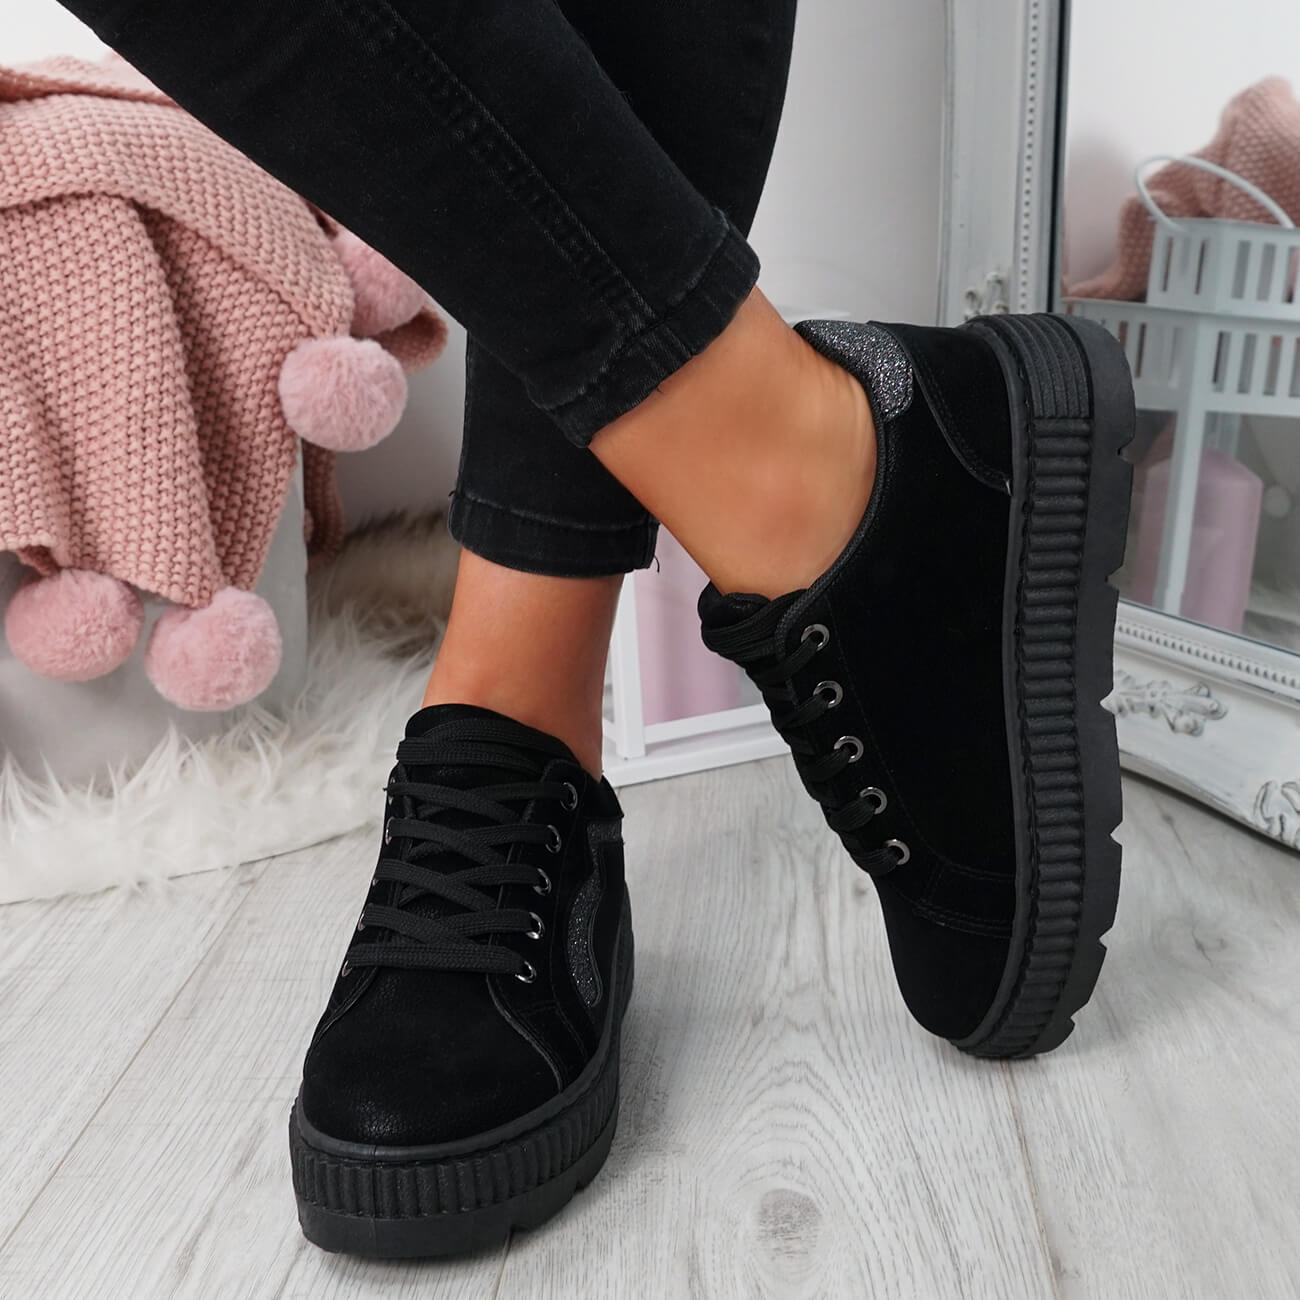 WOMENS-LADIES-LACE-UP-PLATFORM-TRAINERS-PLIMSOLL-SKATE-SNEAKERS-SHOES-SIZE thumbnail 8